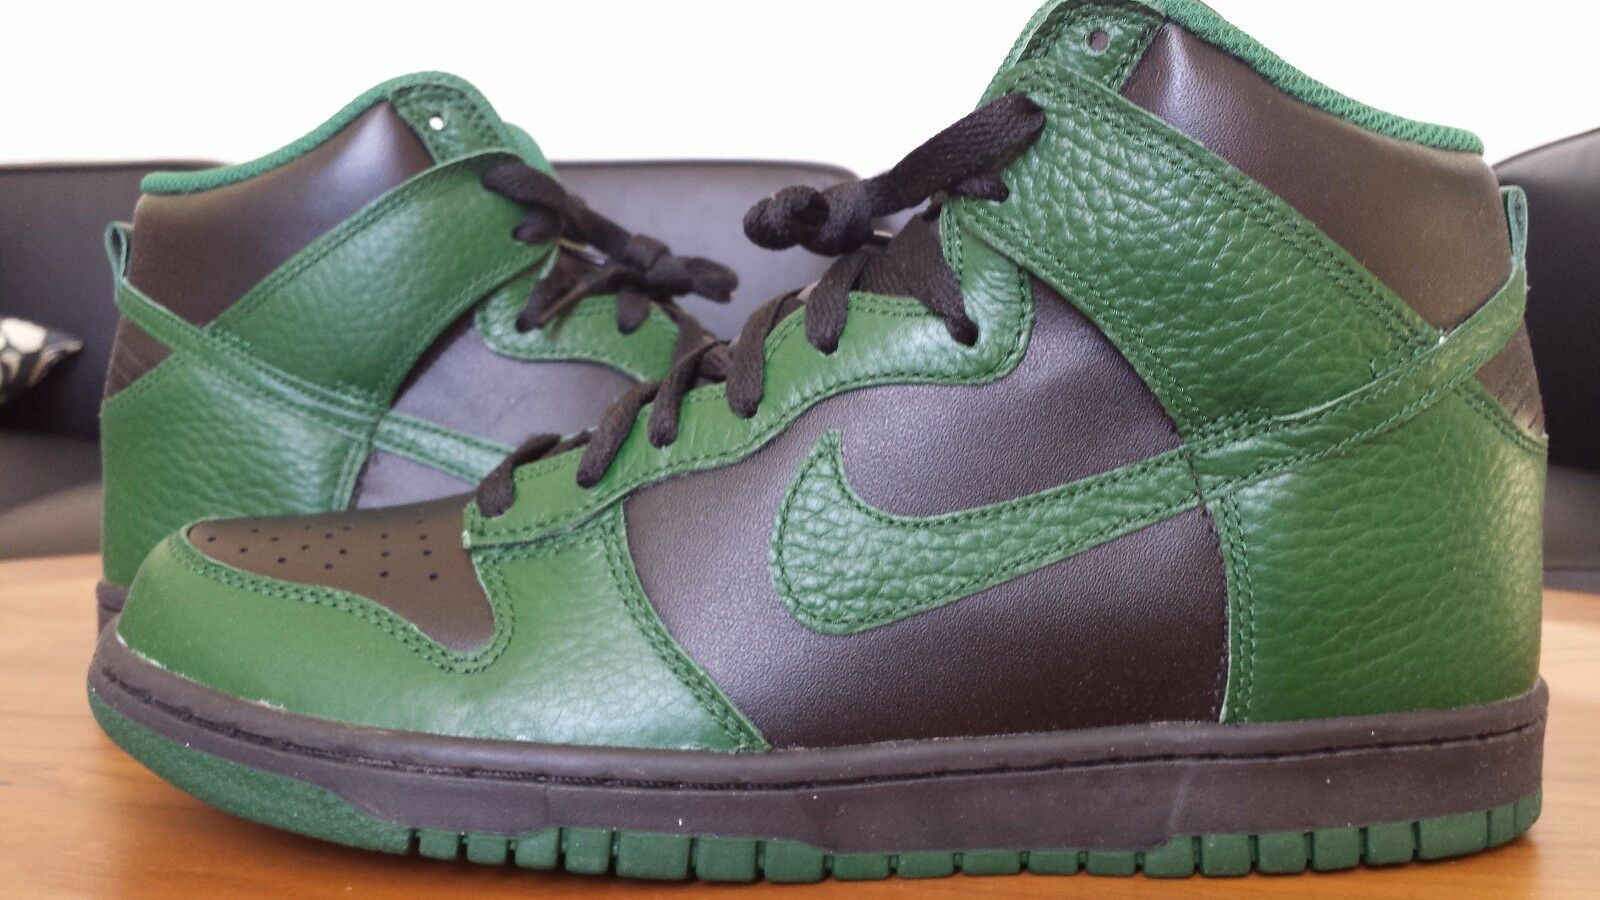 DS 2012 Nike Dunk High 317982-040 8.5